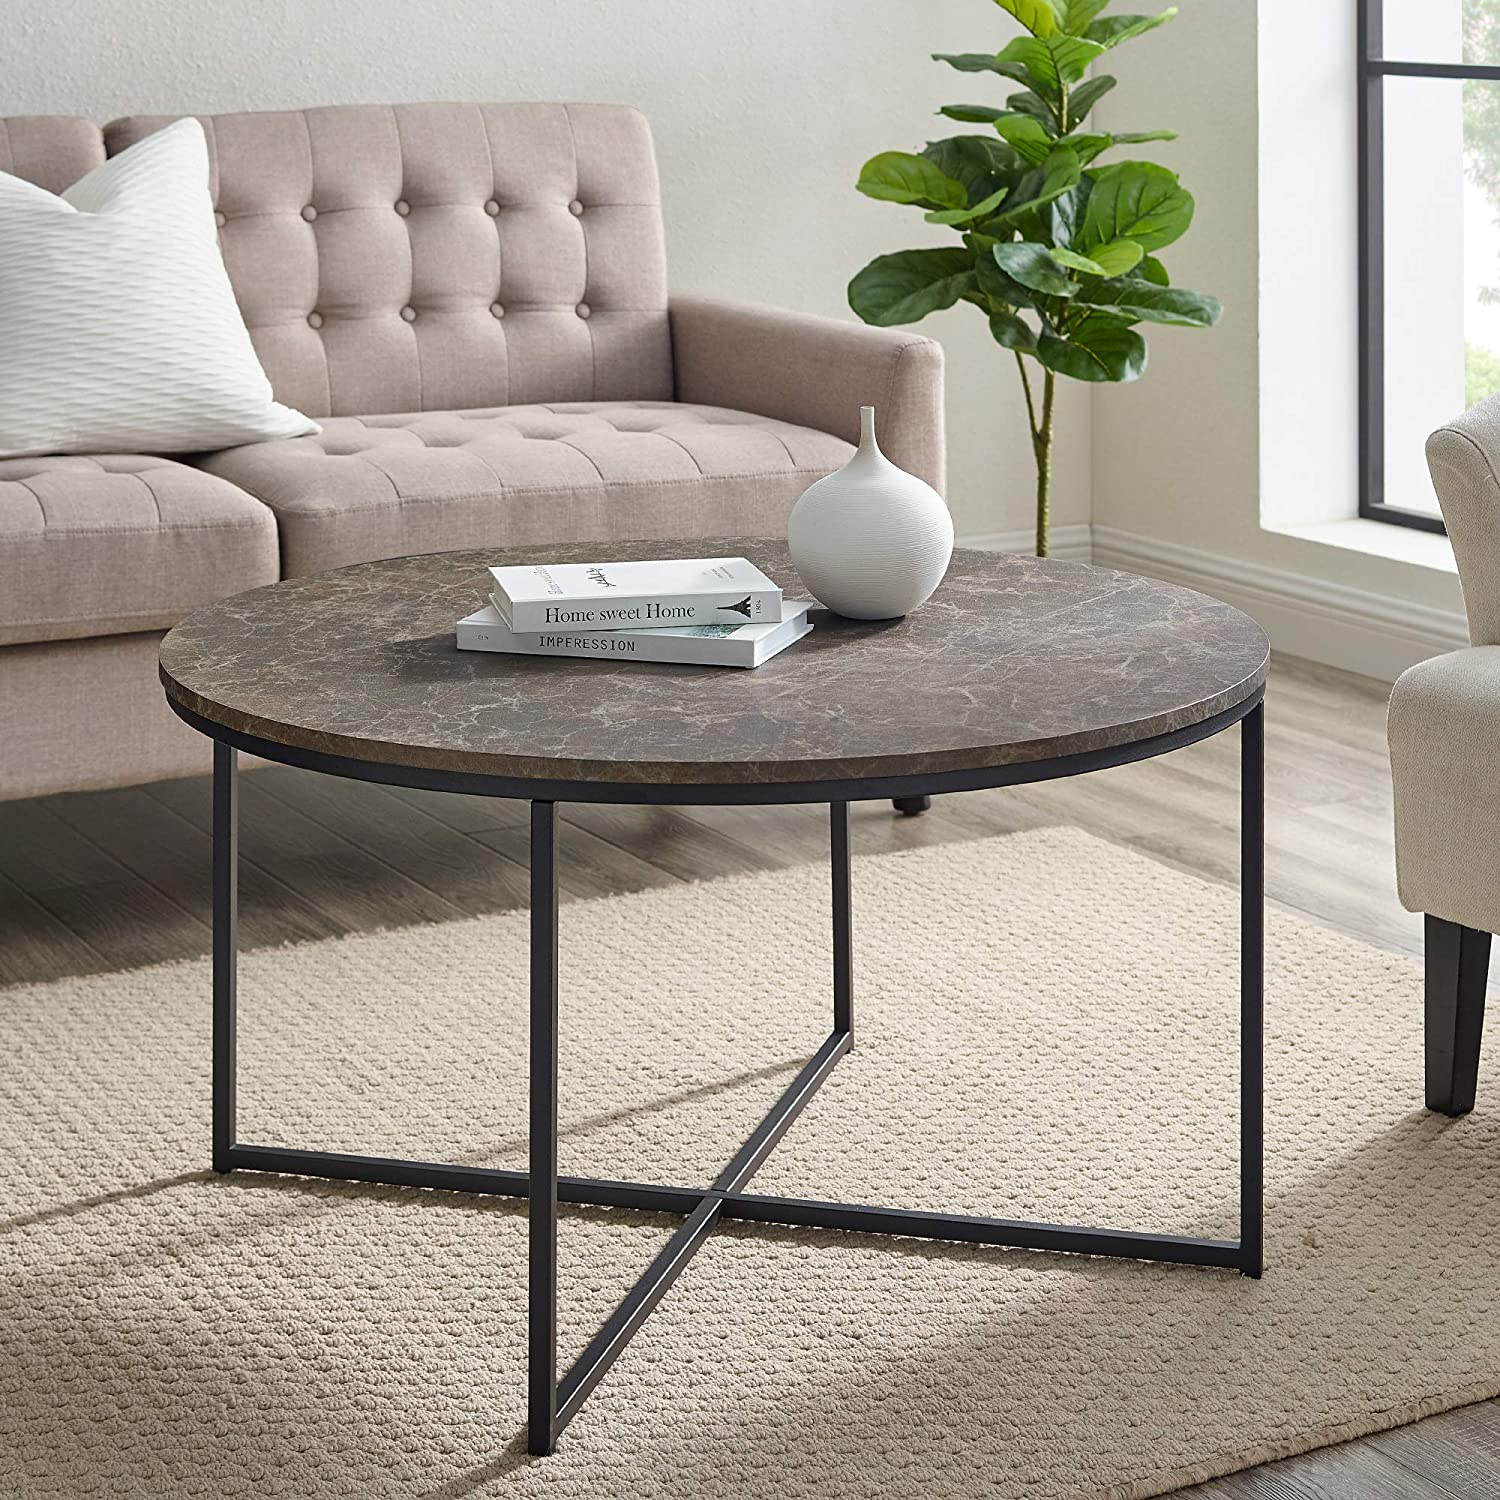 Walker Edison Modern Round Coffee Table Living Room Accent Ottoman, 36 Inch, Brown Marble